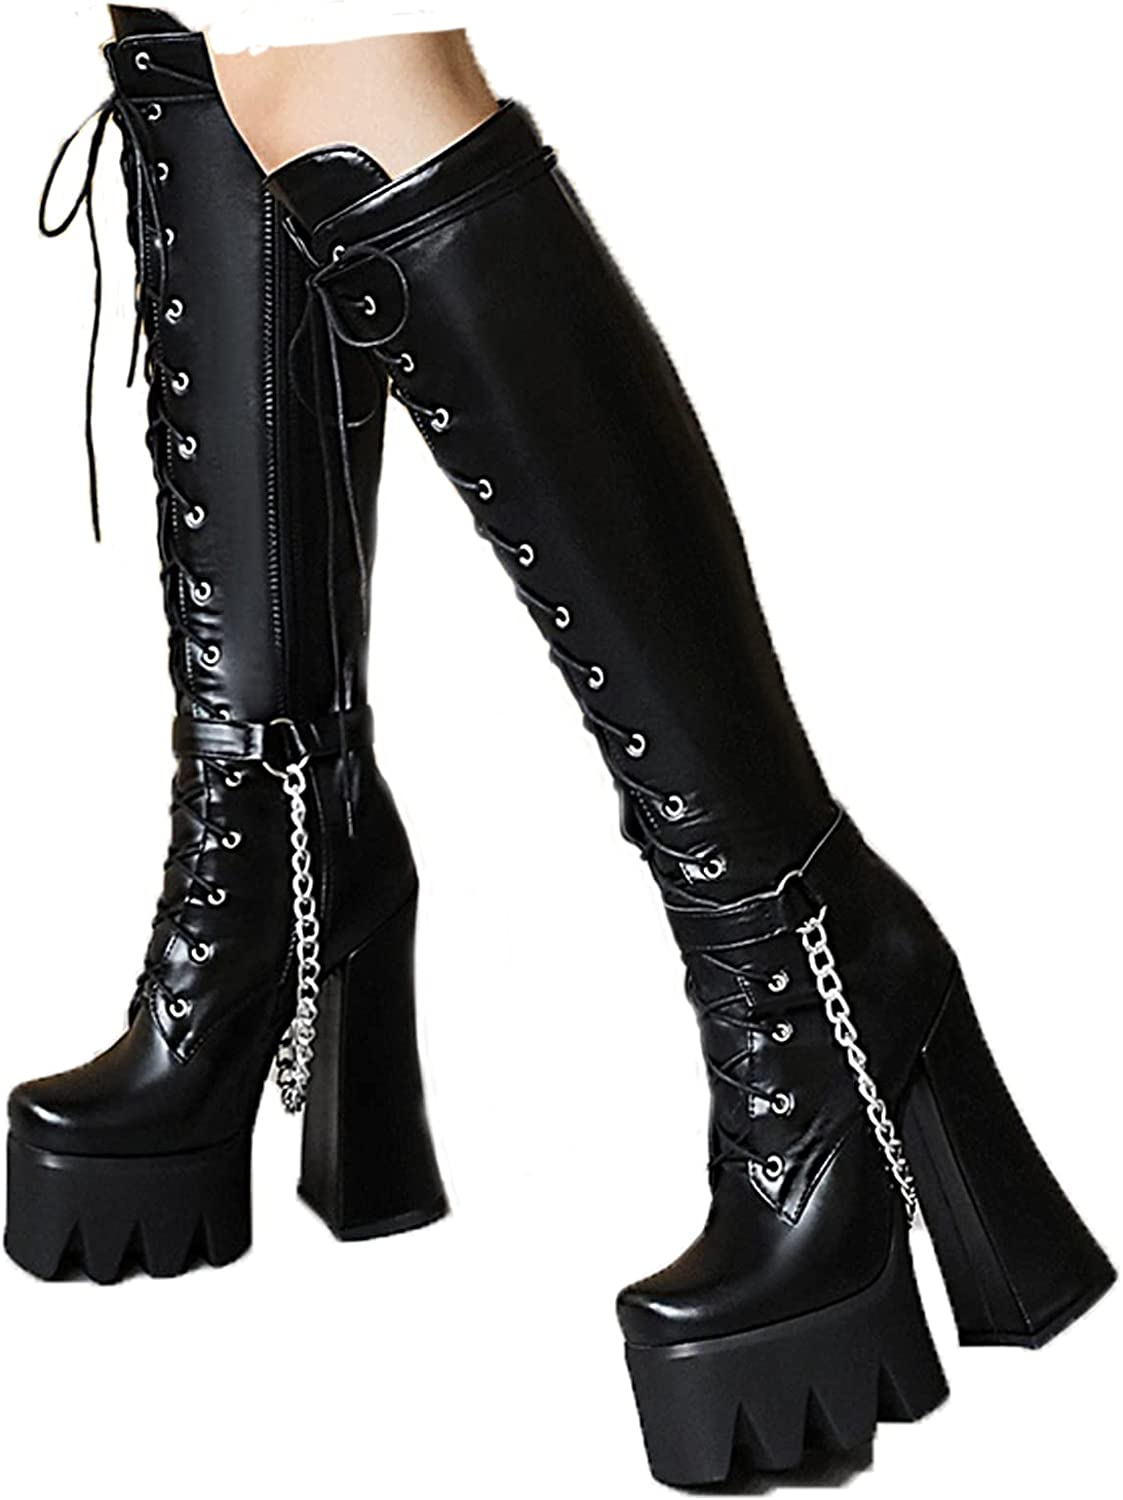 CYNLLIO Women's Platform Over Knee High Boots Multi Buckle Chunky Heel Boots Black Gothic Motorcyle Boots Cool Punk Style Boots